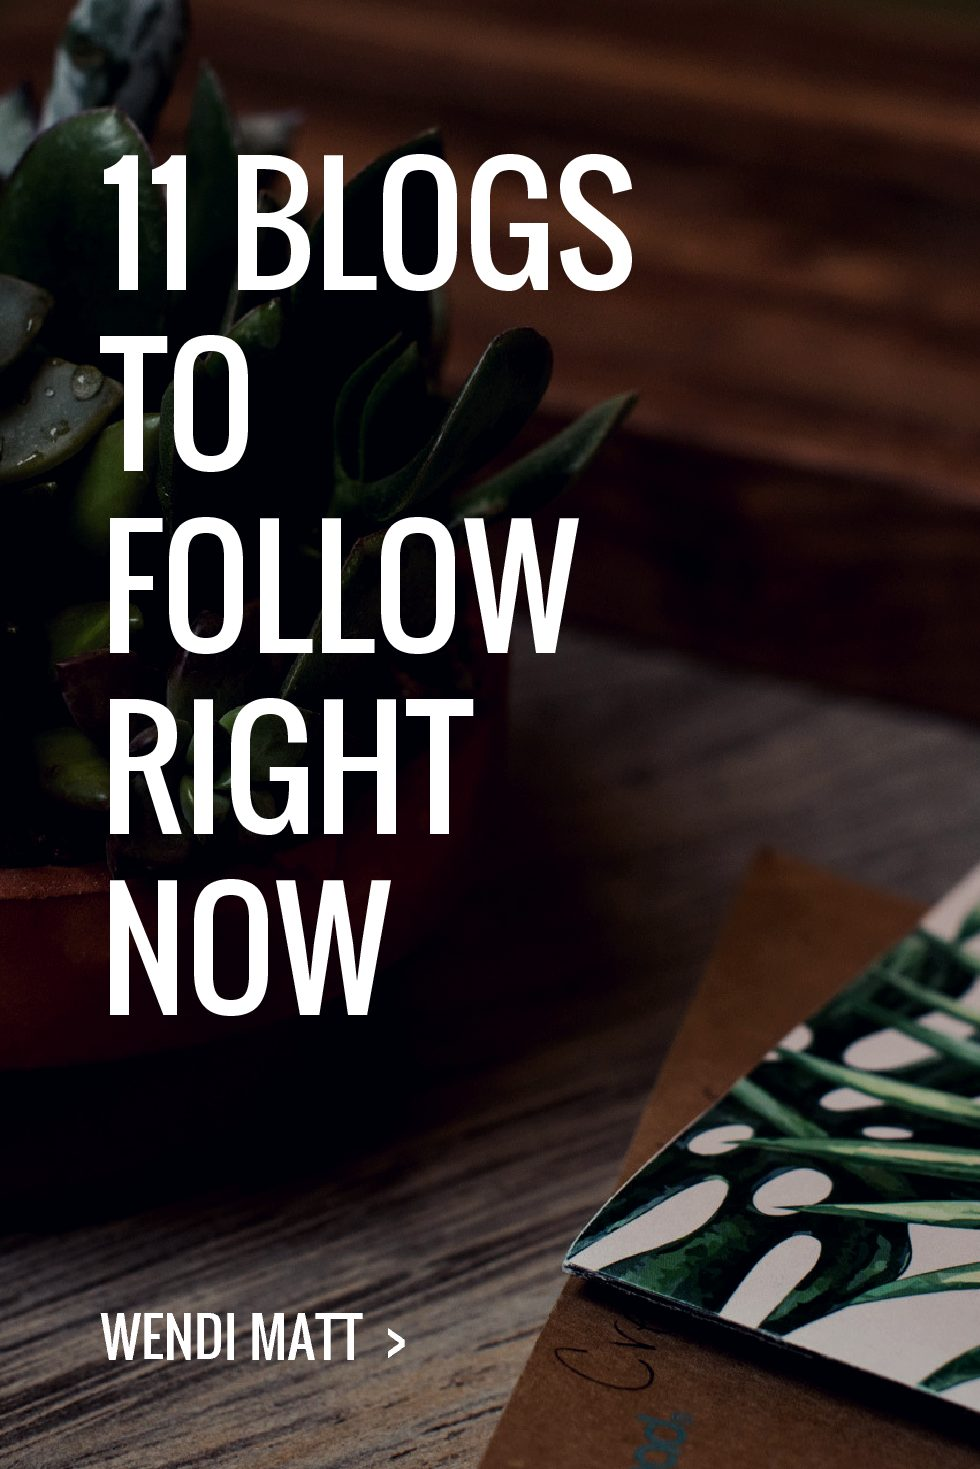 11 Blogs To Follow Right Now